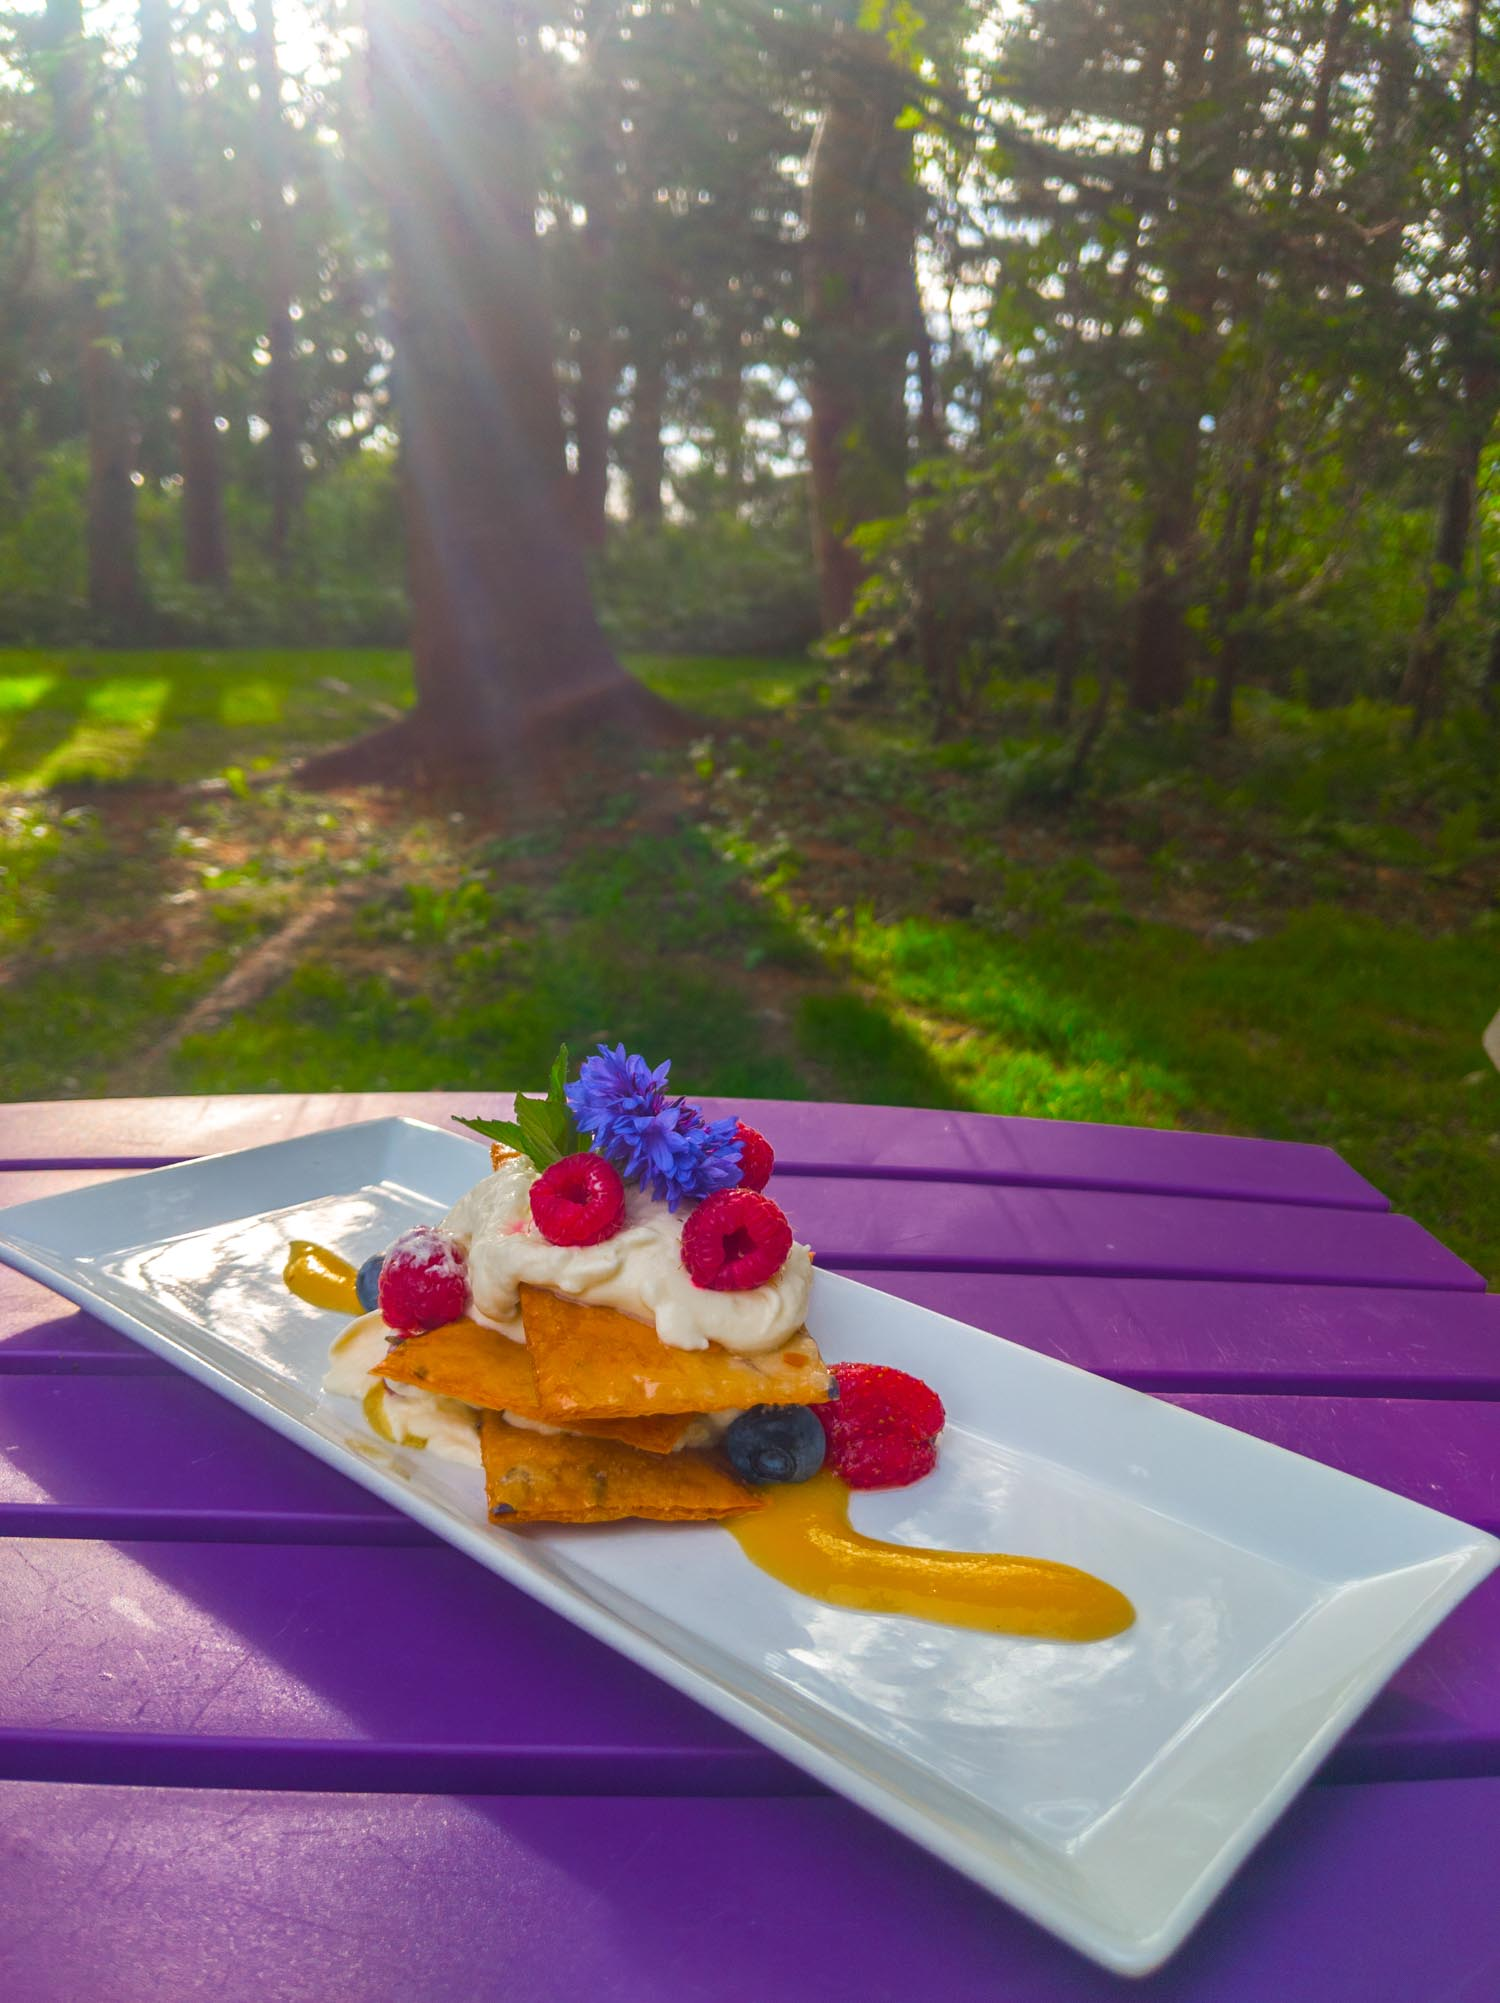 Nova Scotian dessert with fresh fruit and whipped cream at Burntcoat Head Dining on the